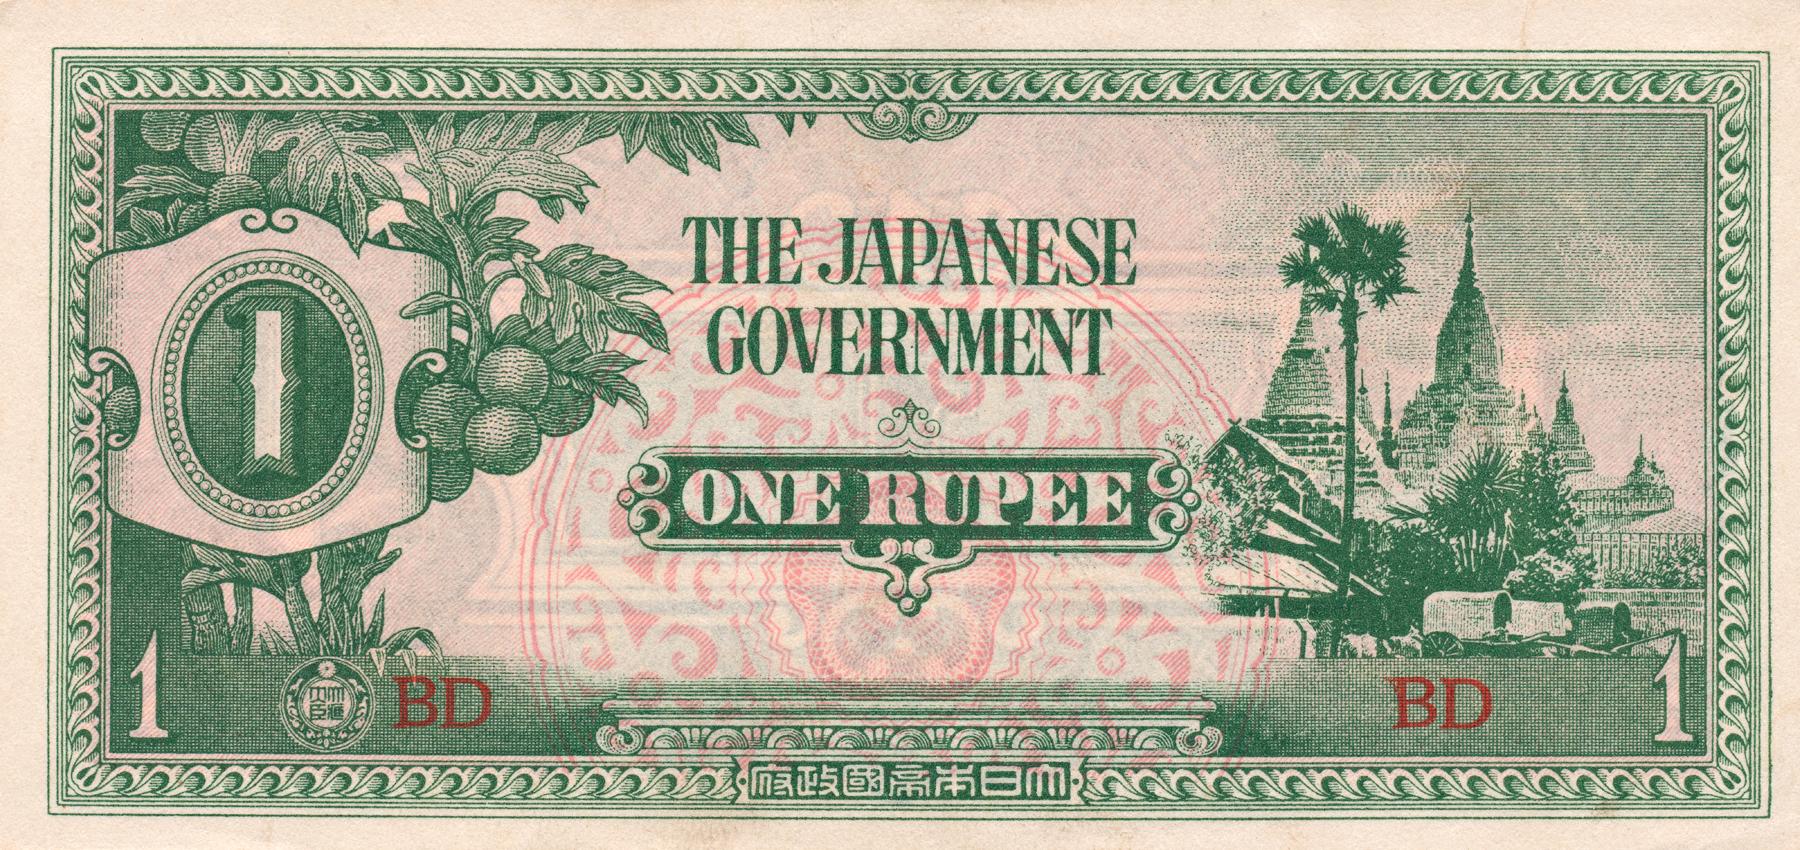 Vintage banknote - japanese government photo